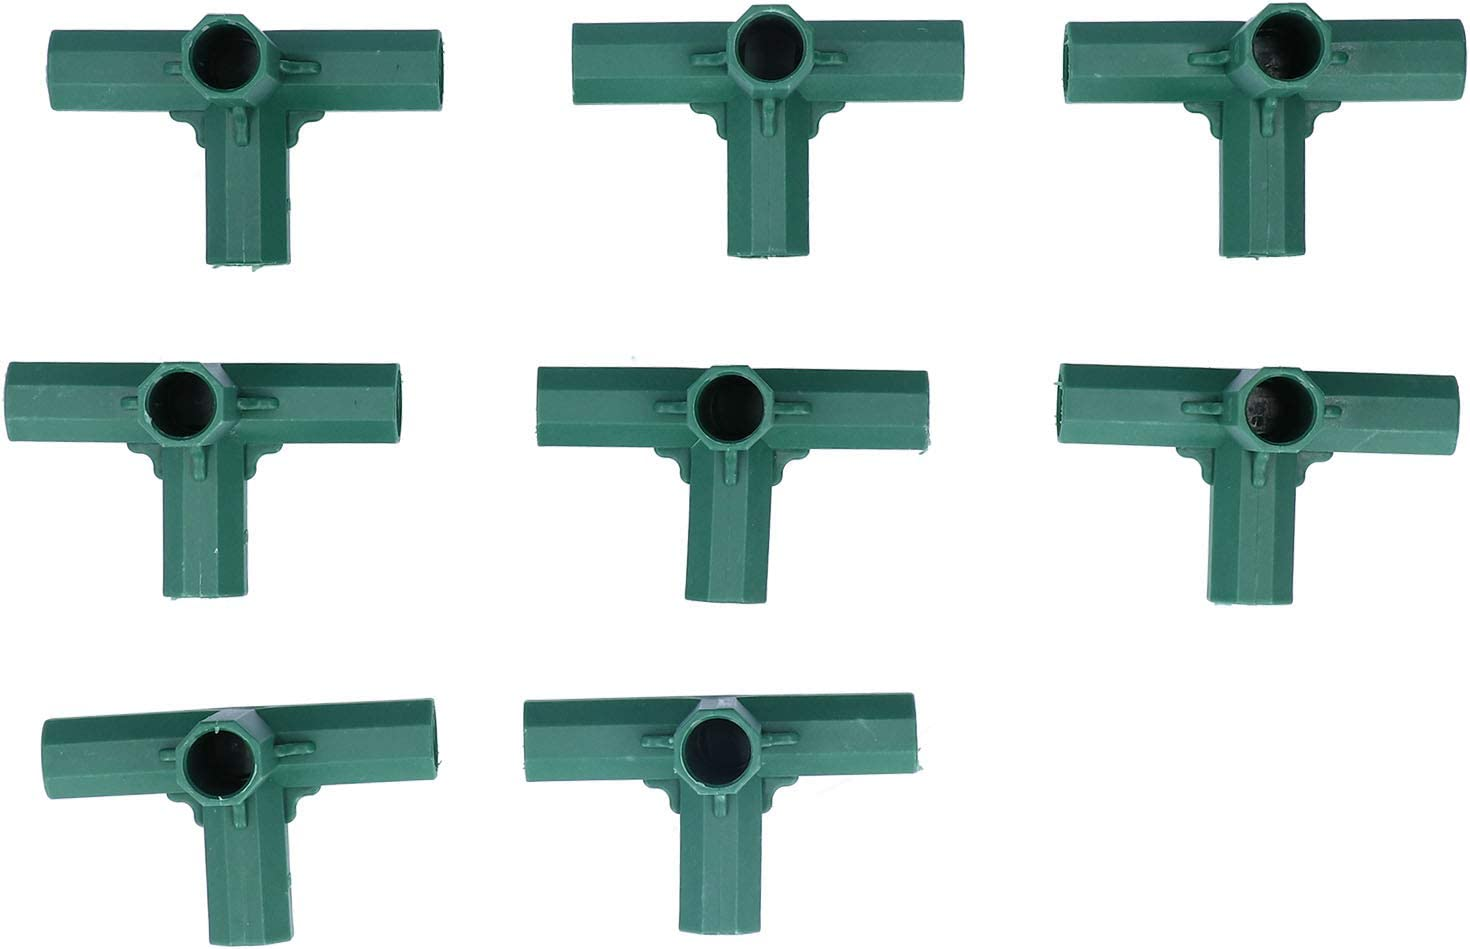 Yosoo 8Pcs Right Angle All items in the store 4 Way Connector All items in the store Stake 16mm Plant Support